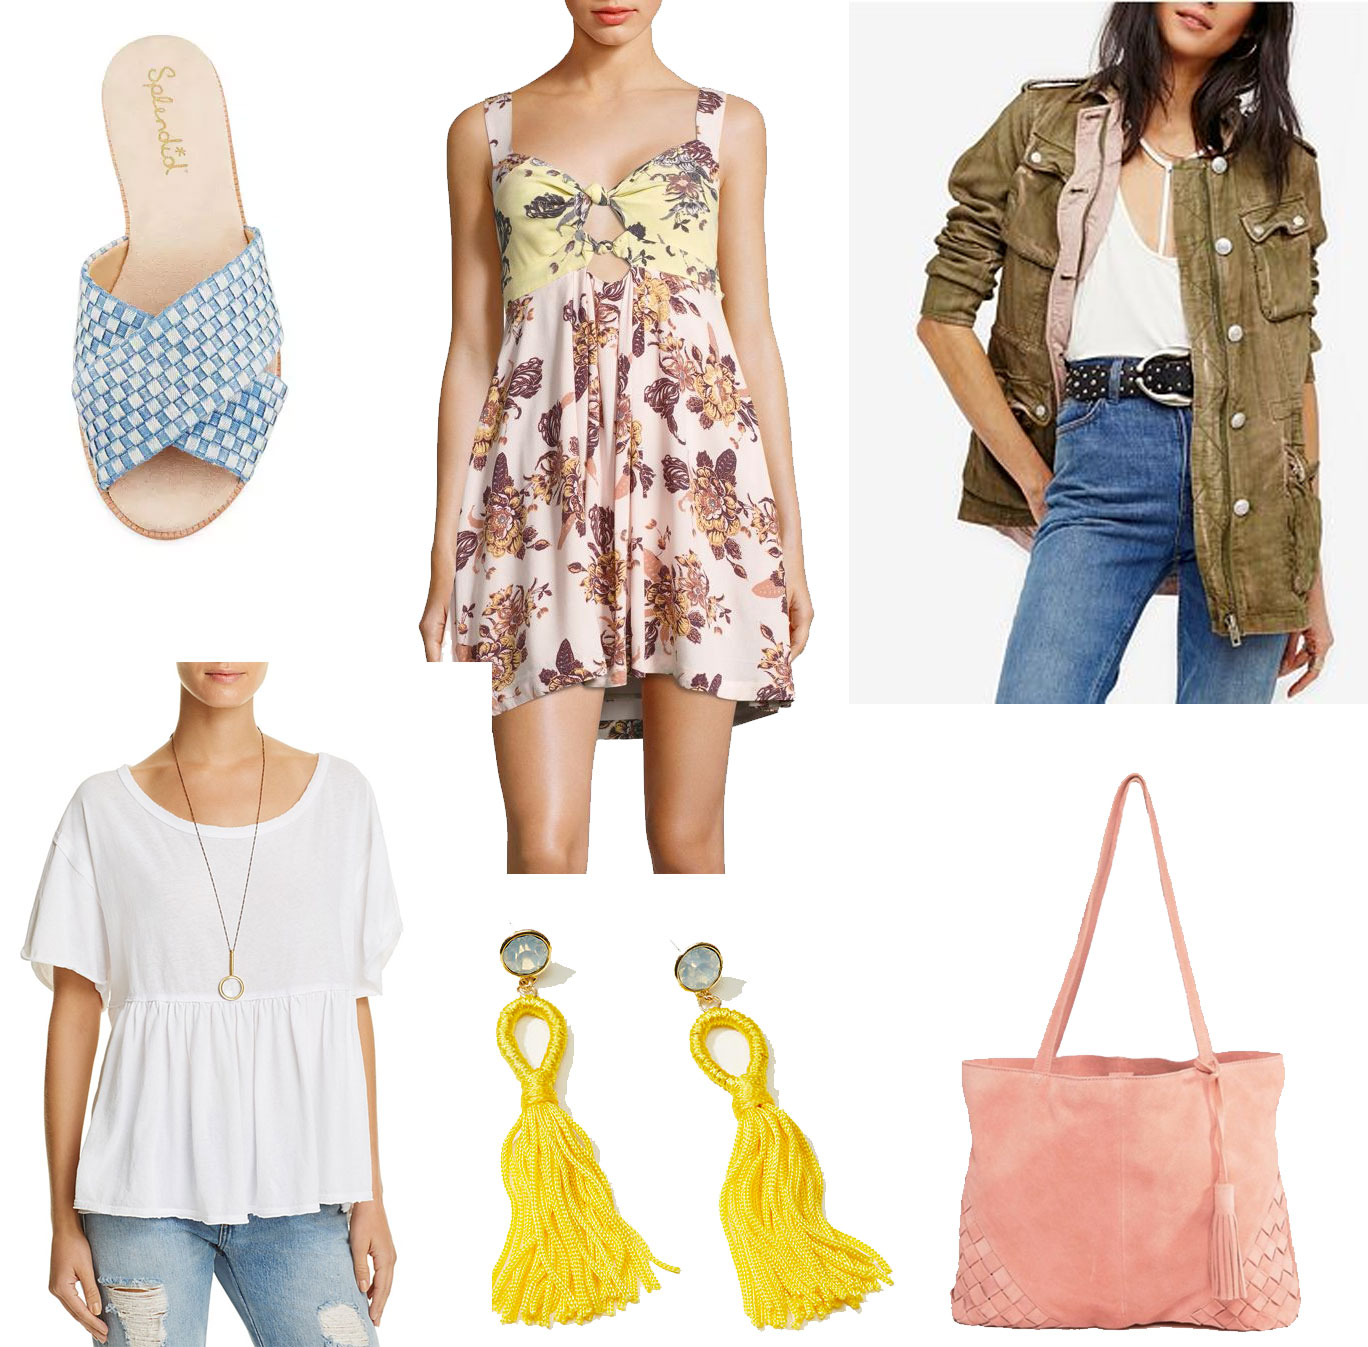 Summer clearance picks